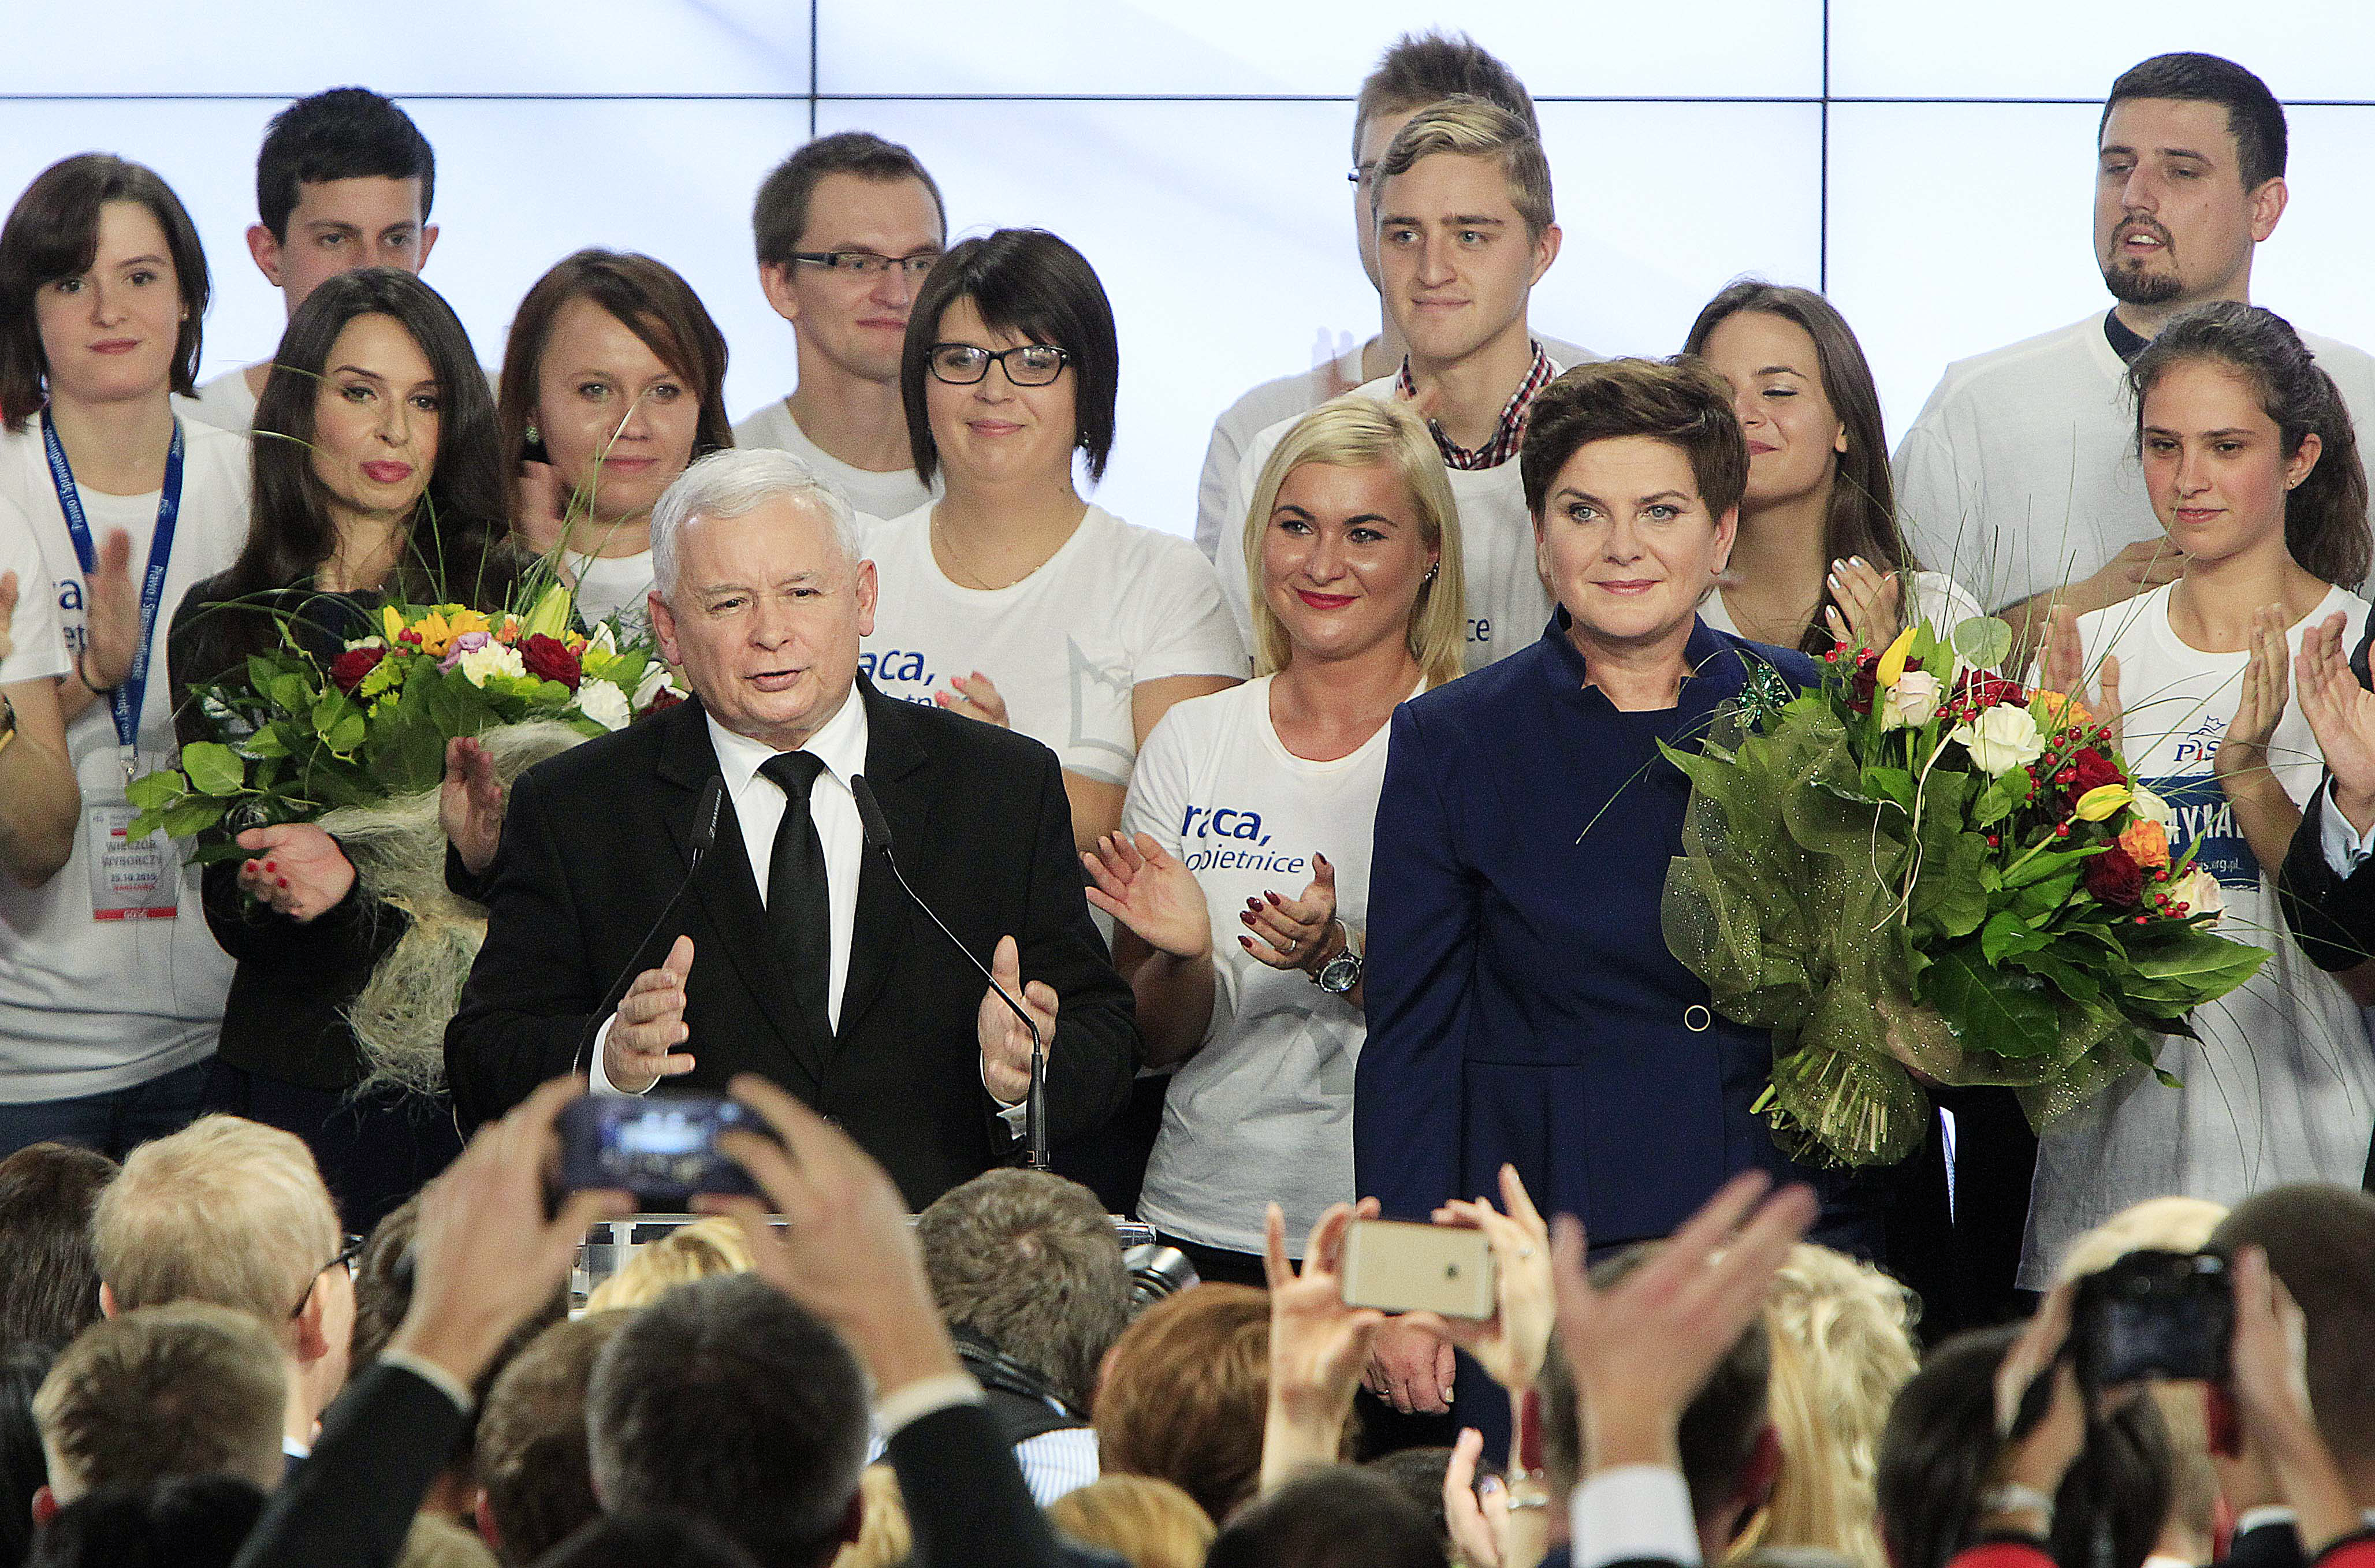 Conservative Law and Justice leader Jaroslaw Kaczynski, center left, along with Justice candidate for Prime Minister Beata Szydlo, center right, delivers a speech at the party's headquarters in Warsaw, Poland, Oct. 25, 2015.